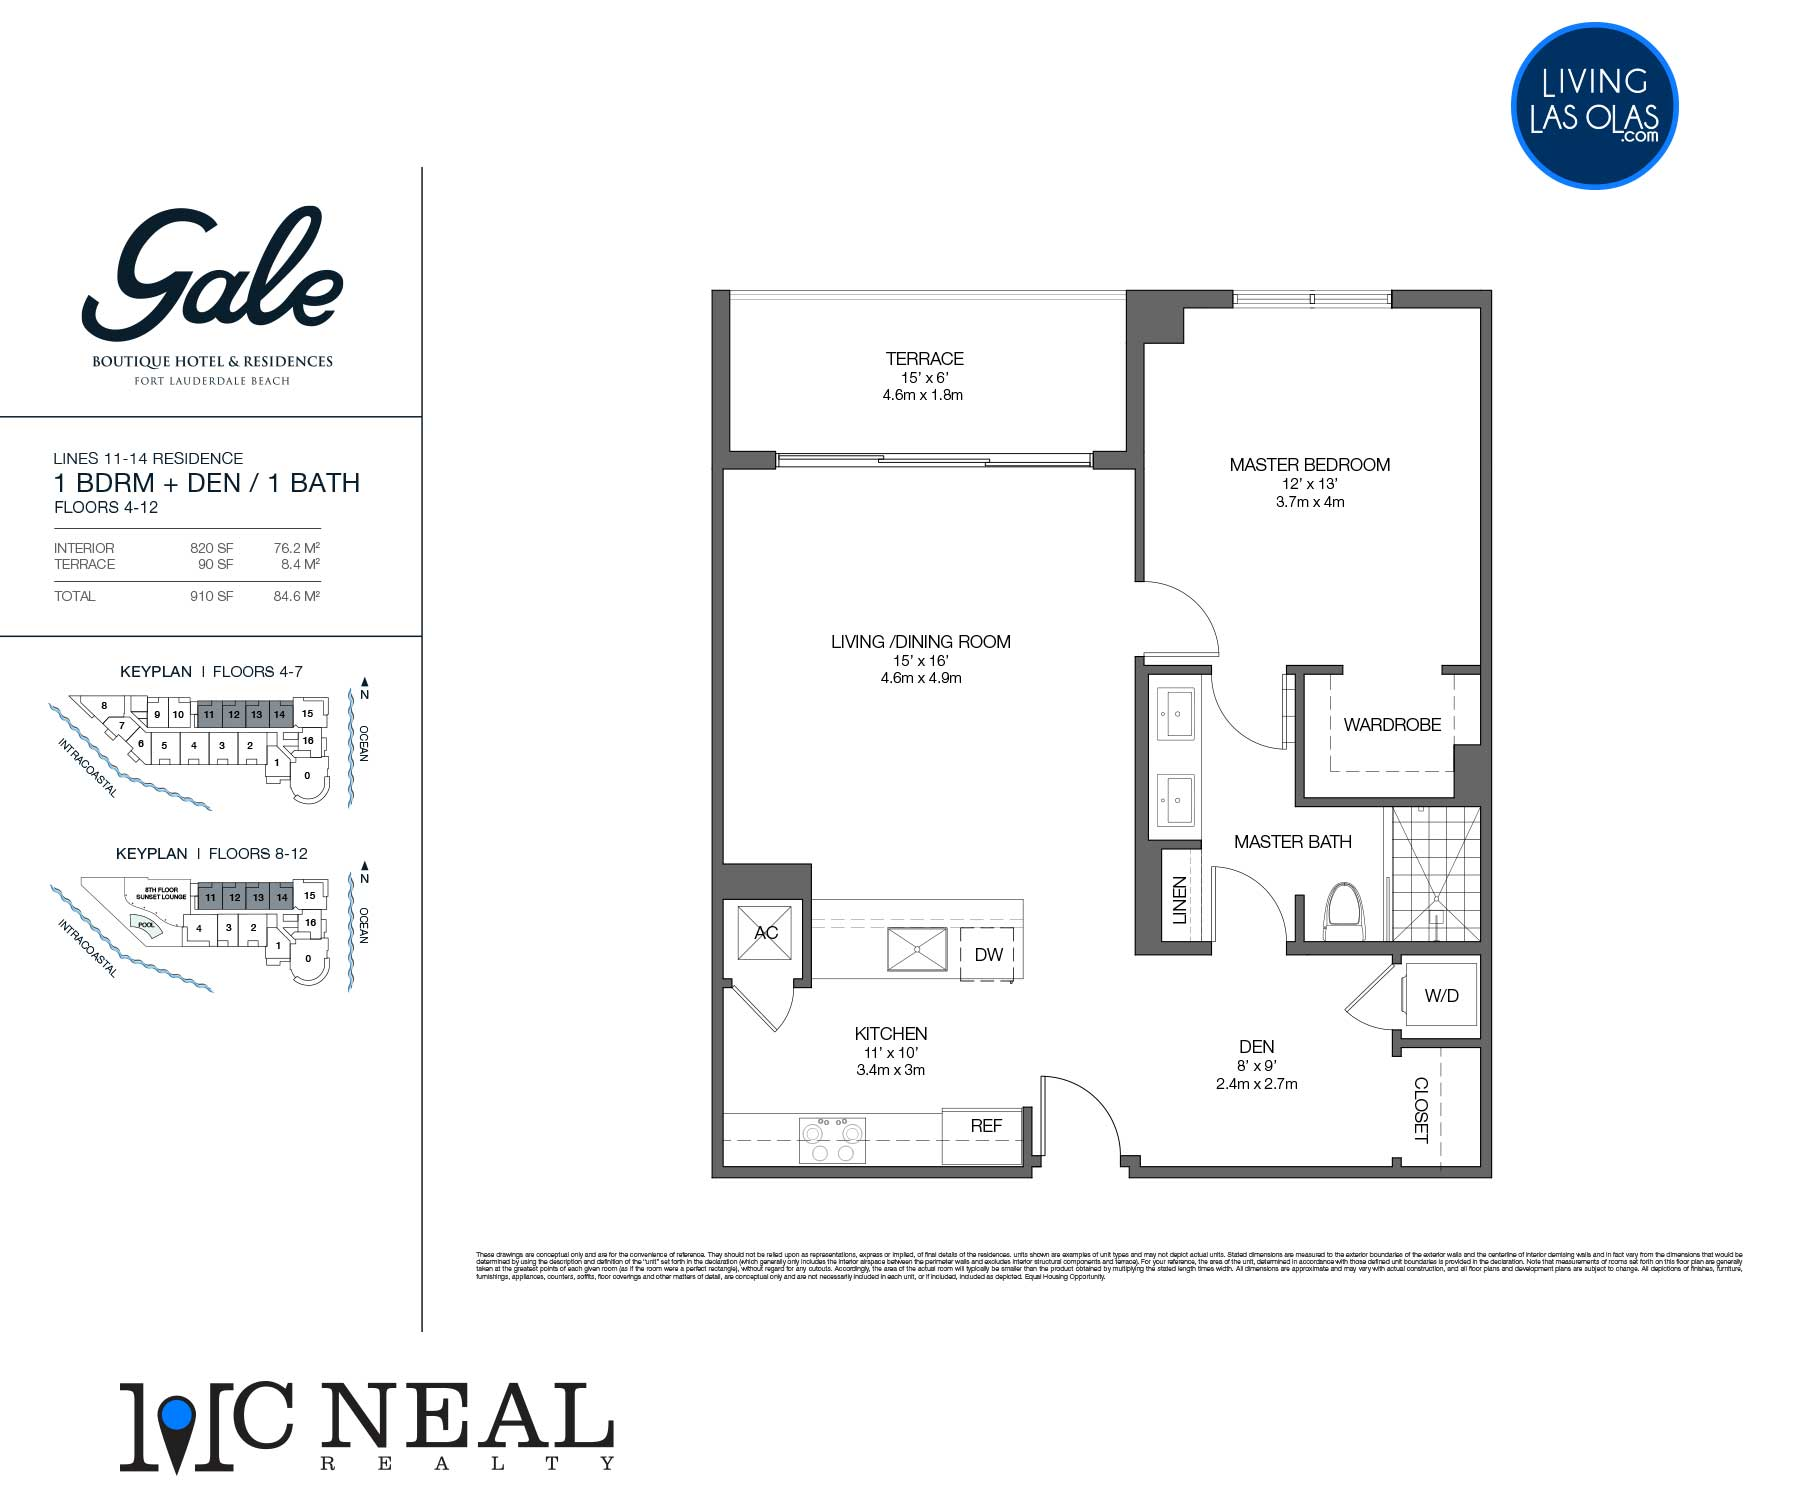 Tiffany House Condos Floor Plans Line 11-14